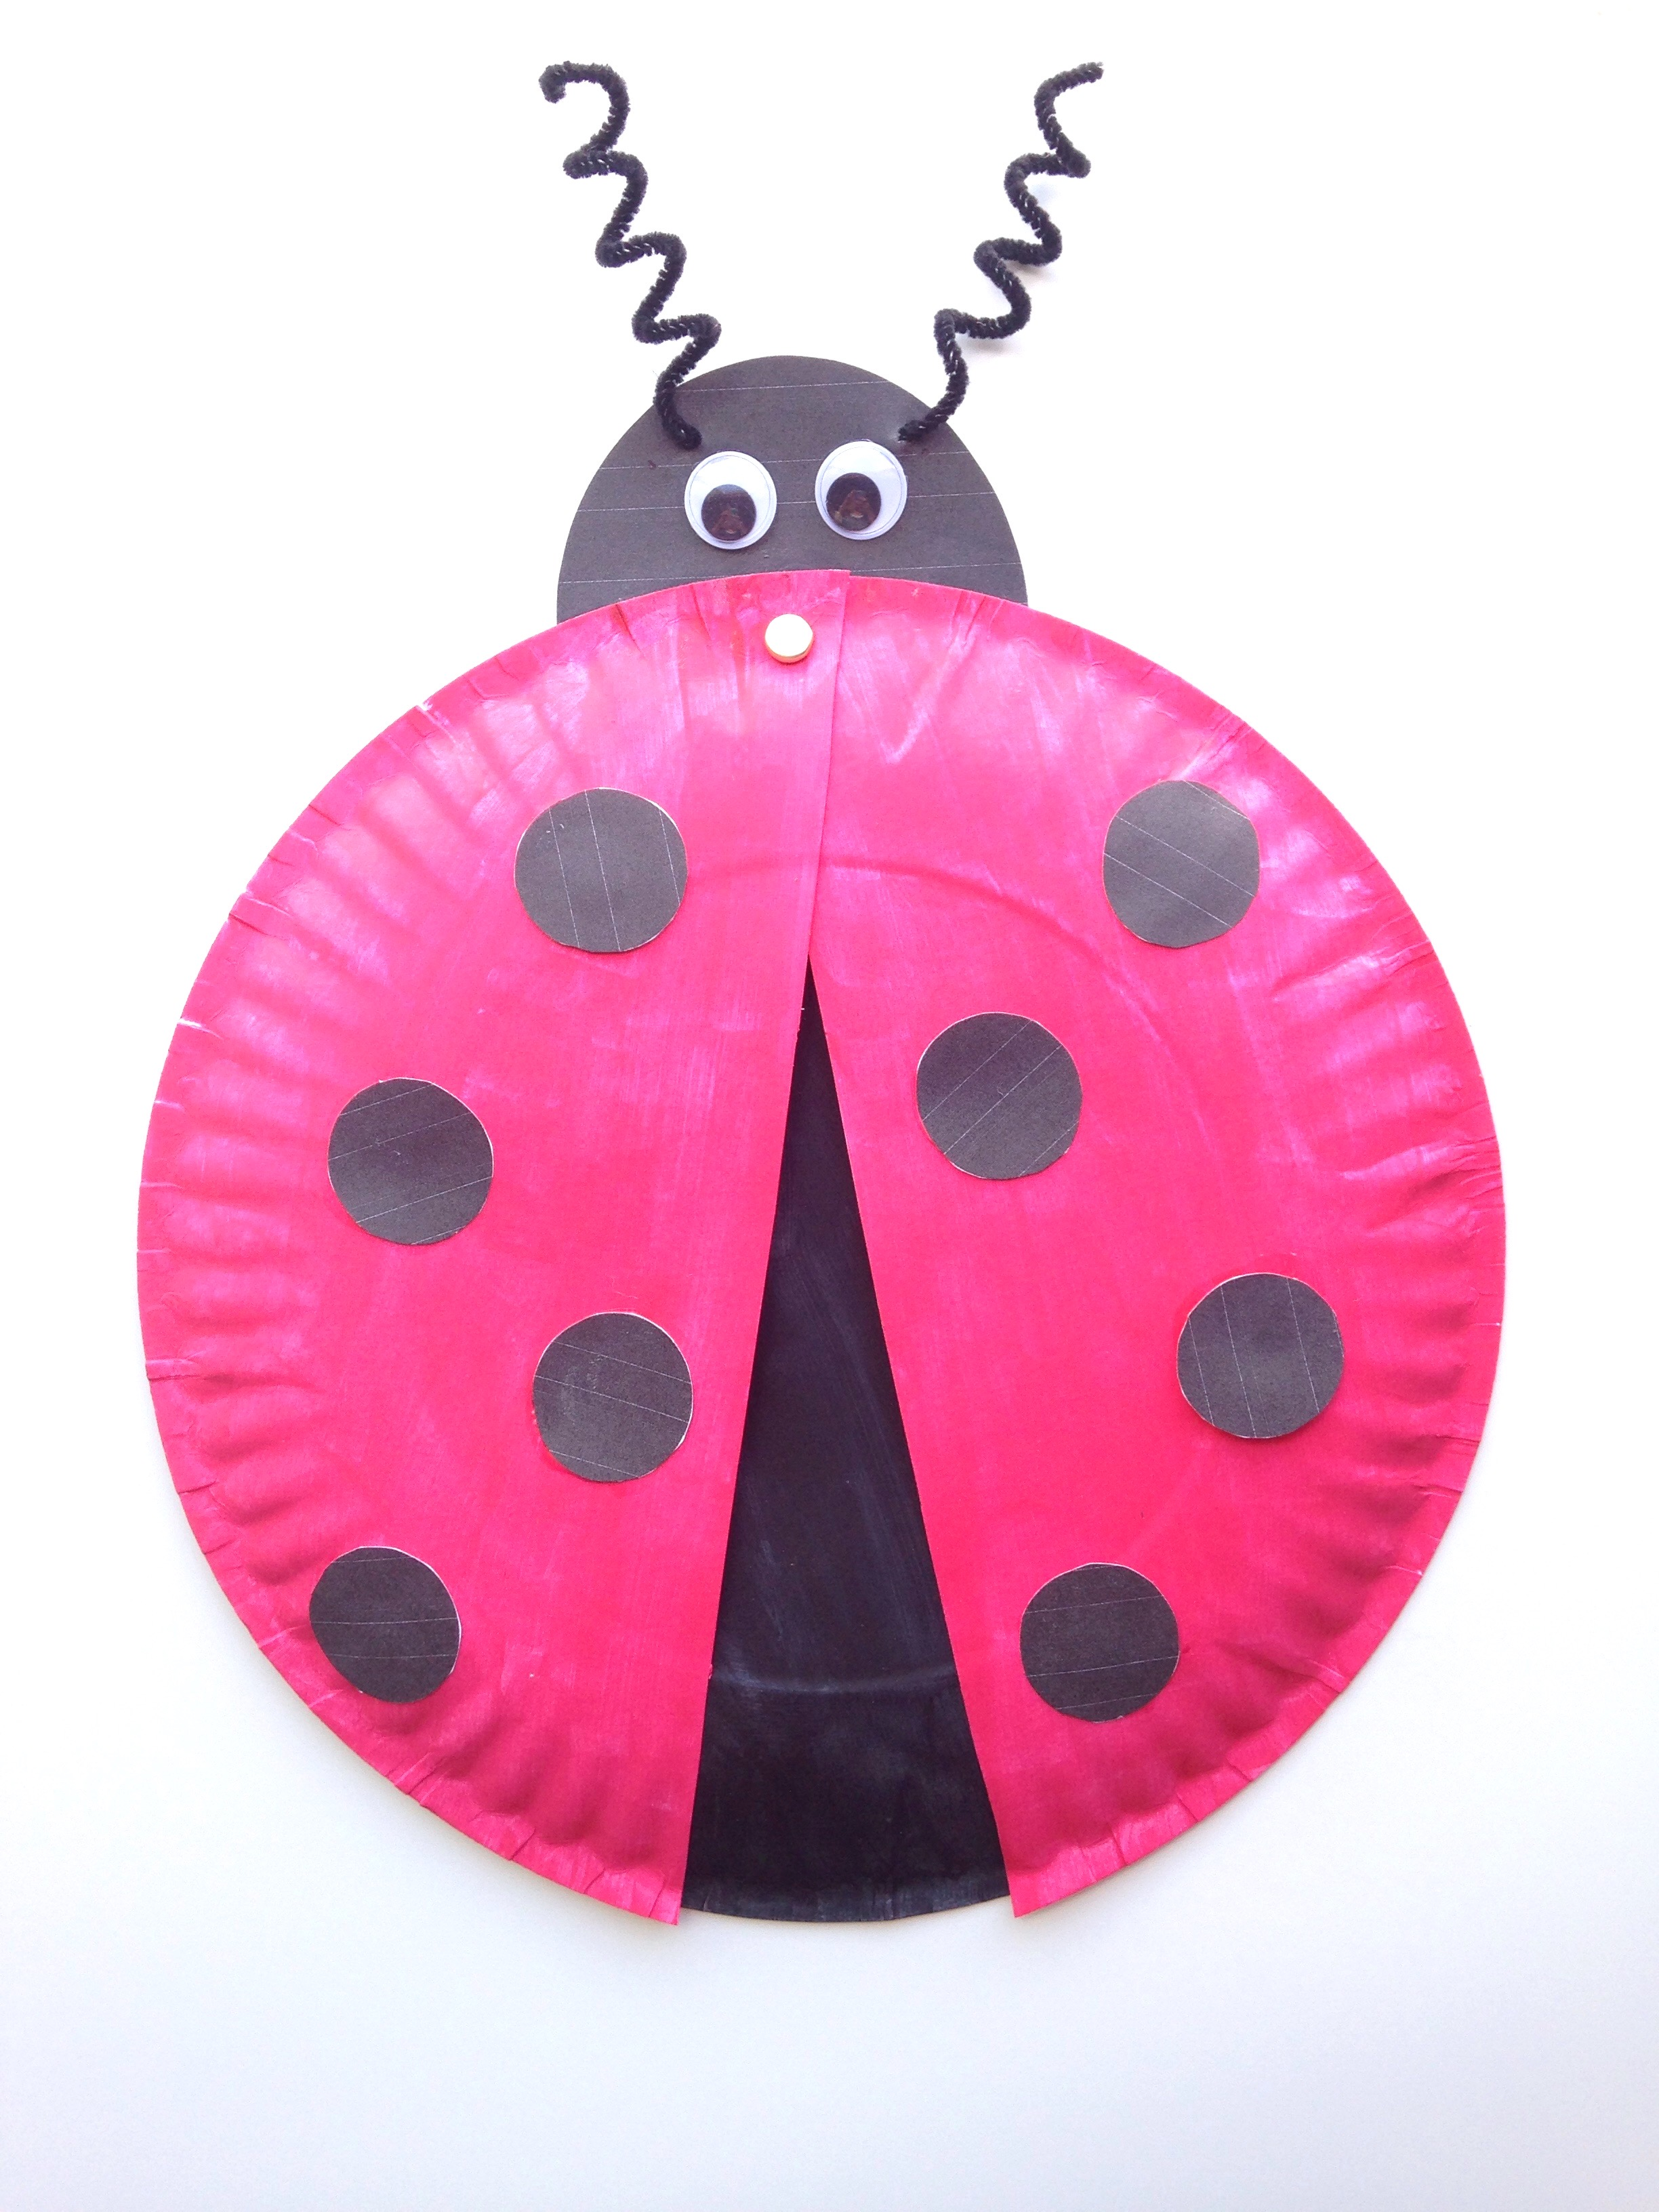 Ladybug Paper Plate Craft For Kids Free Printable Template